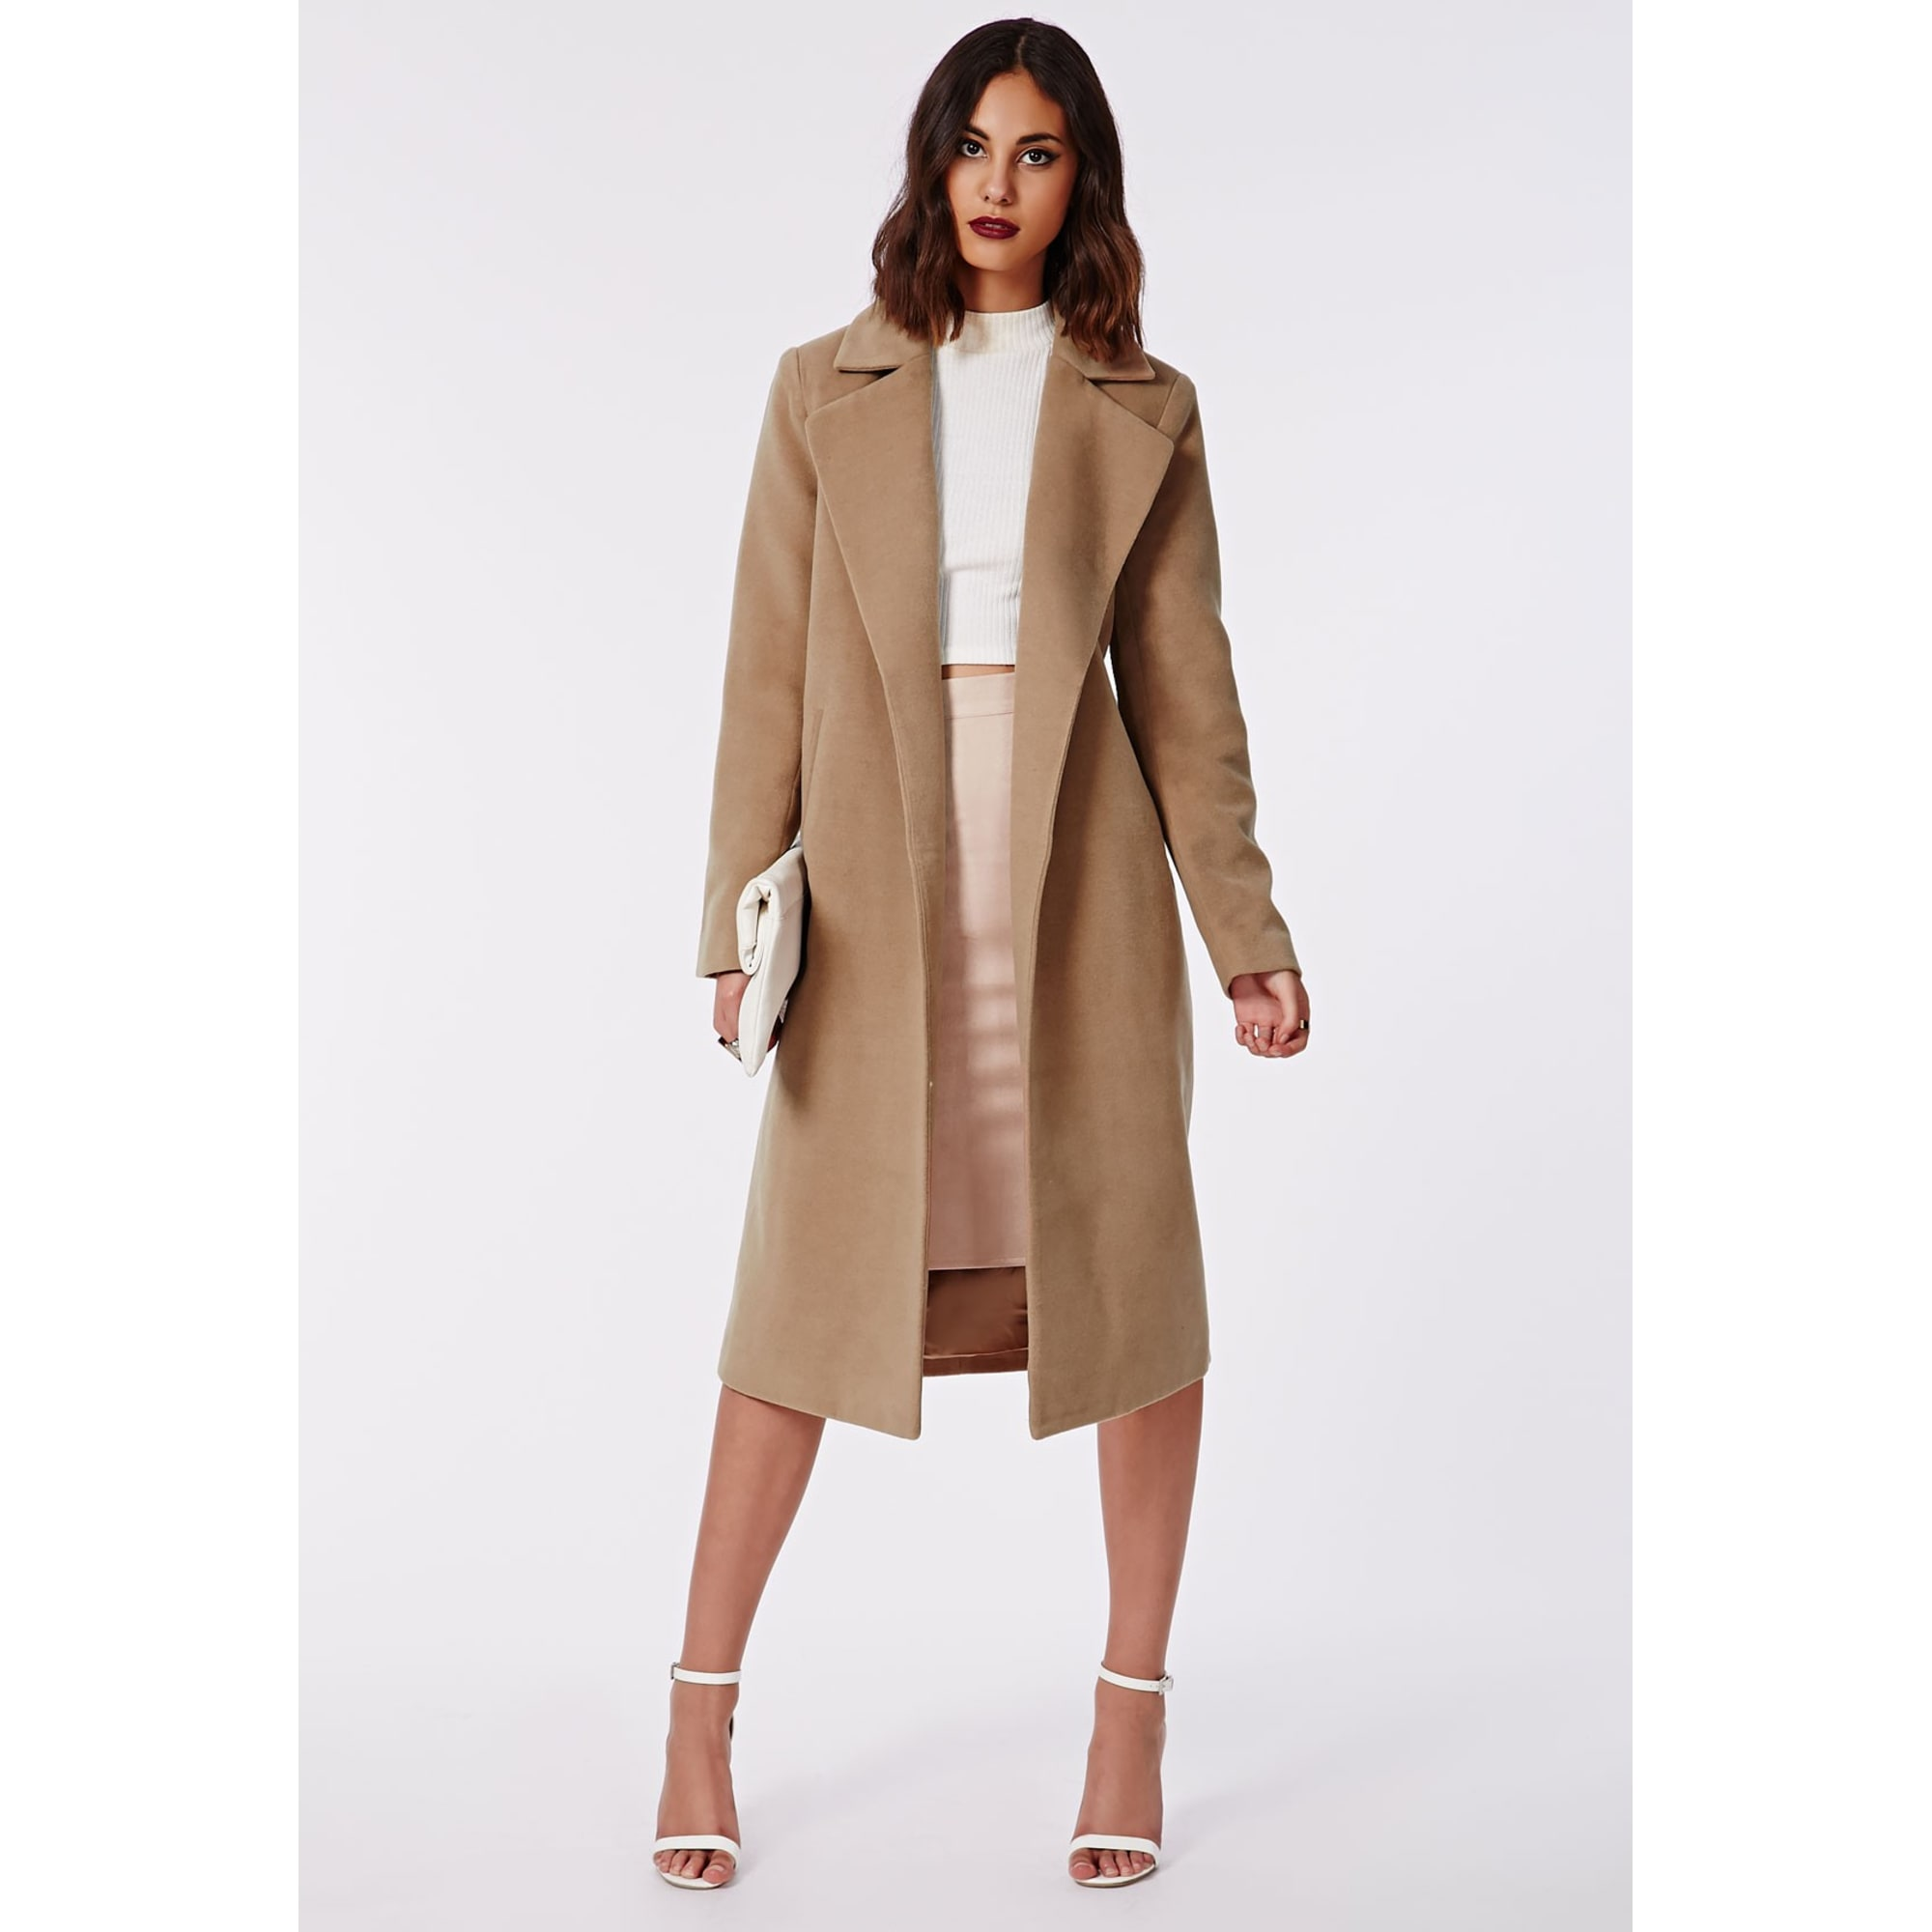 Missguided Camel Missguided Camel Missguided Manteau Manteau Camel Manteau Pk0nwO